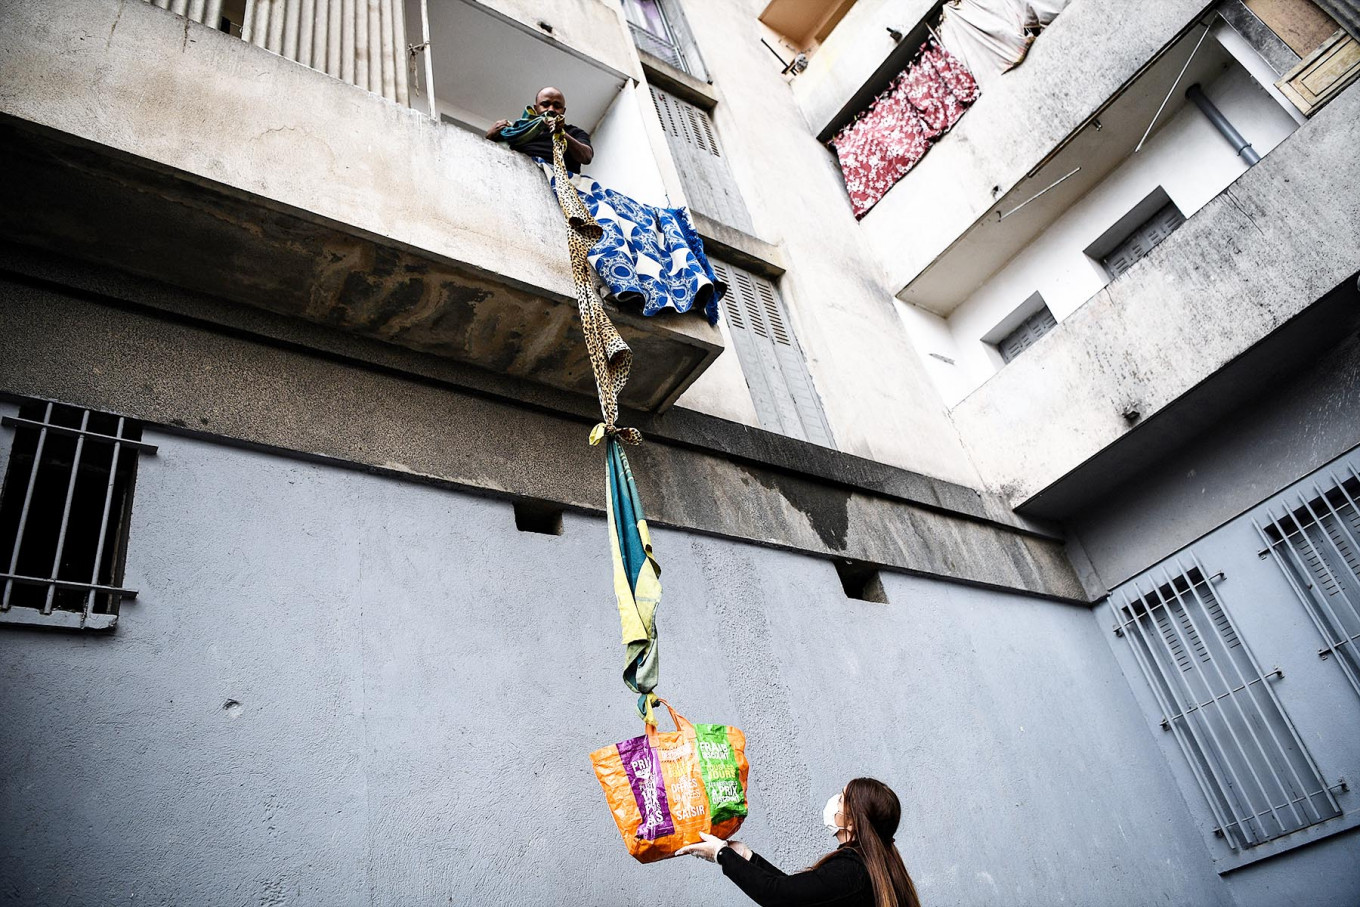 An inhabitant of the residence Maison Blanche (White House residence), composed of 226 mostly unsanitary dwellings, collects food offered by neighbours from his balcony, using a rope made with blankets, on March 31, 2020, in Marseille, southern France, on the fifteenth day of a lockdown aimed at curbing the spread of the COVID-19 (novel coronavirus). AFP/Anne-Christine Poujoulat